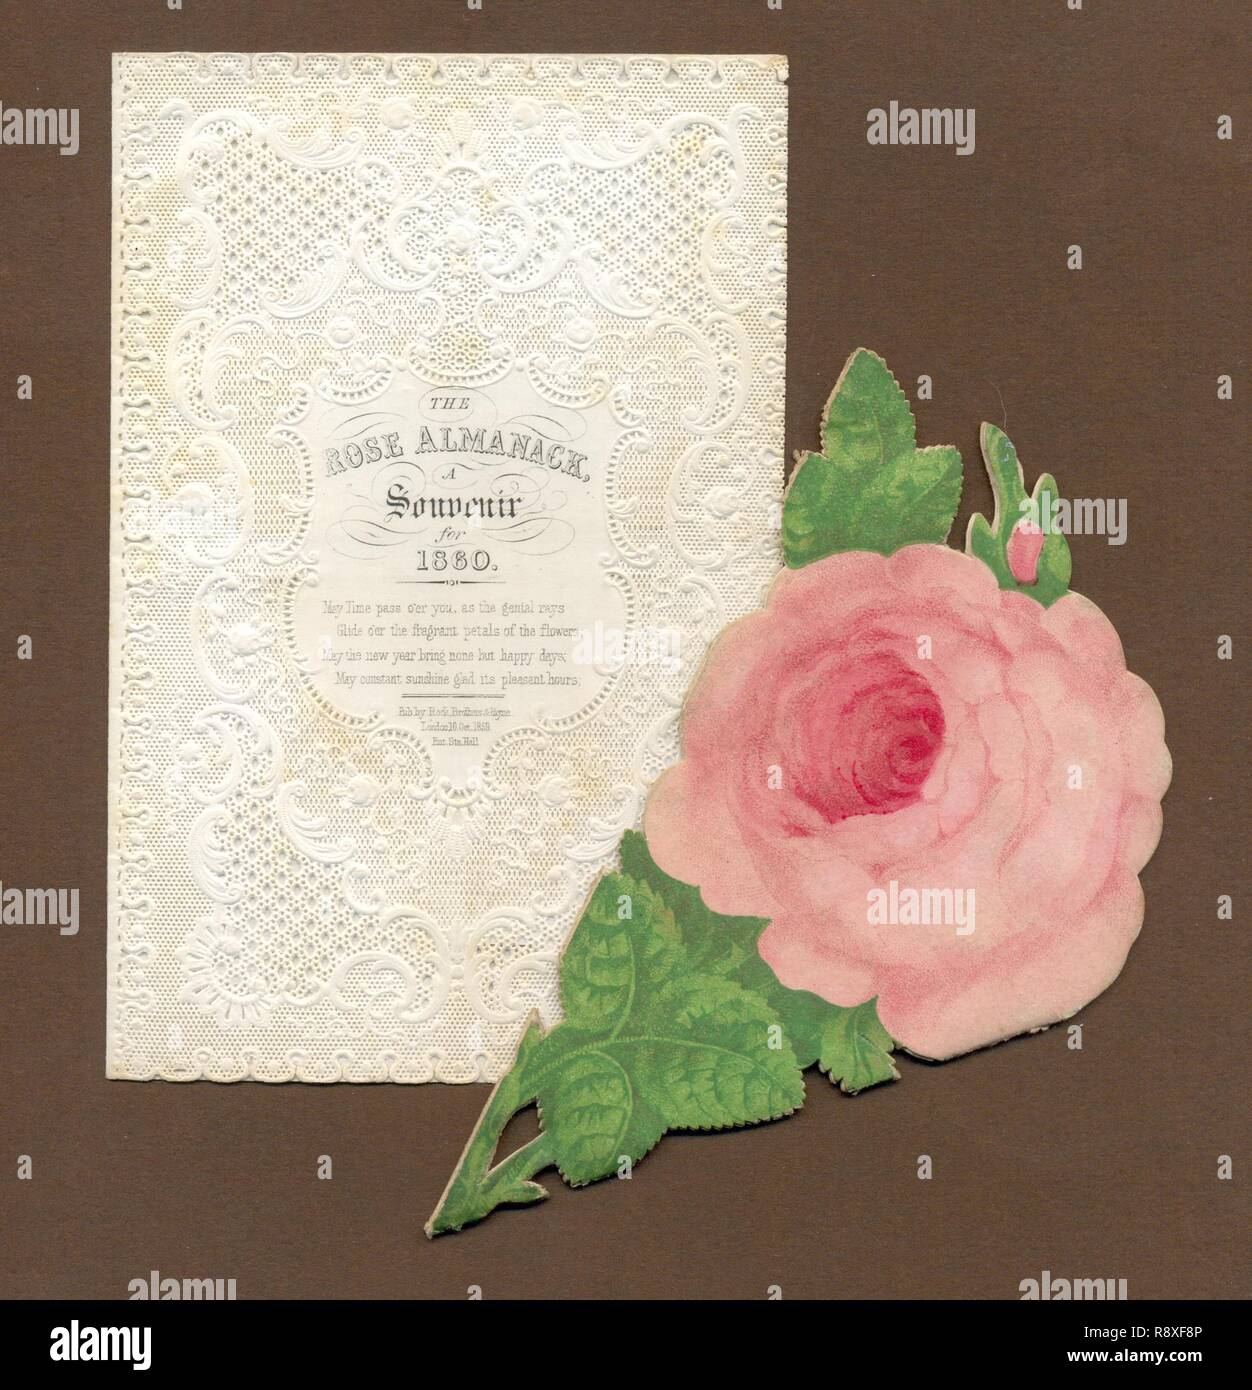 A Souvenir Rose Almanack for 1860, folder and contents - Stock Image